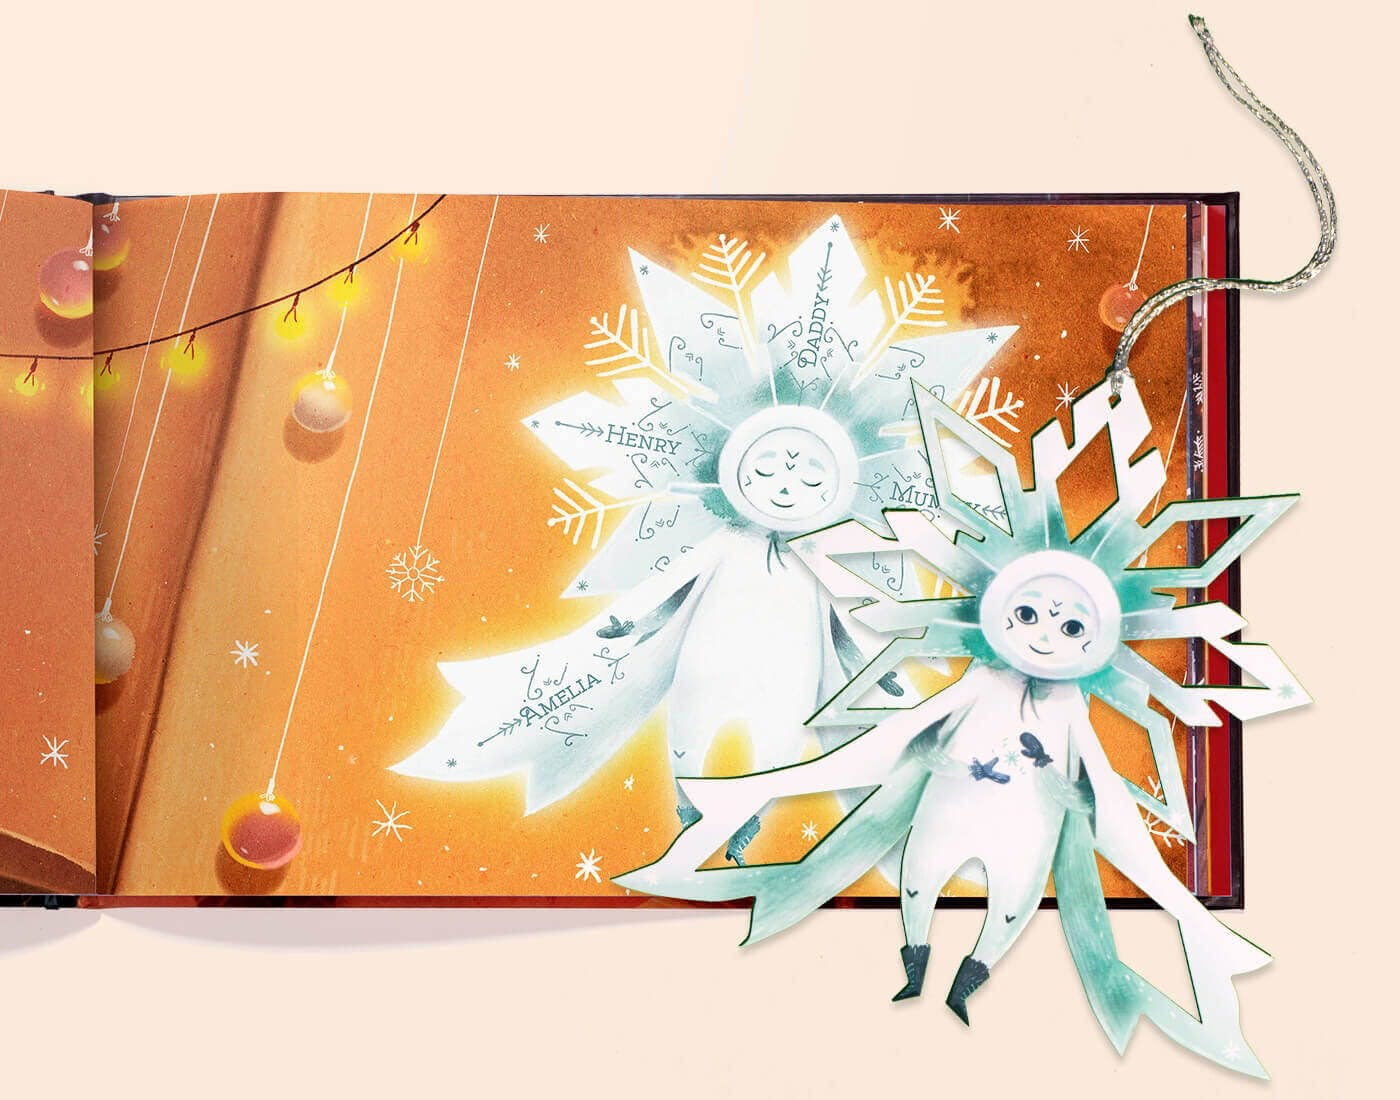 The Christmas Snowflake - Product Description of the pop out snowflake that comes with the book